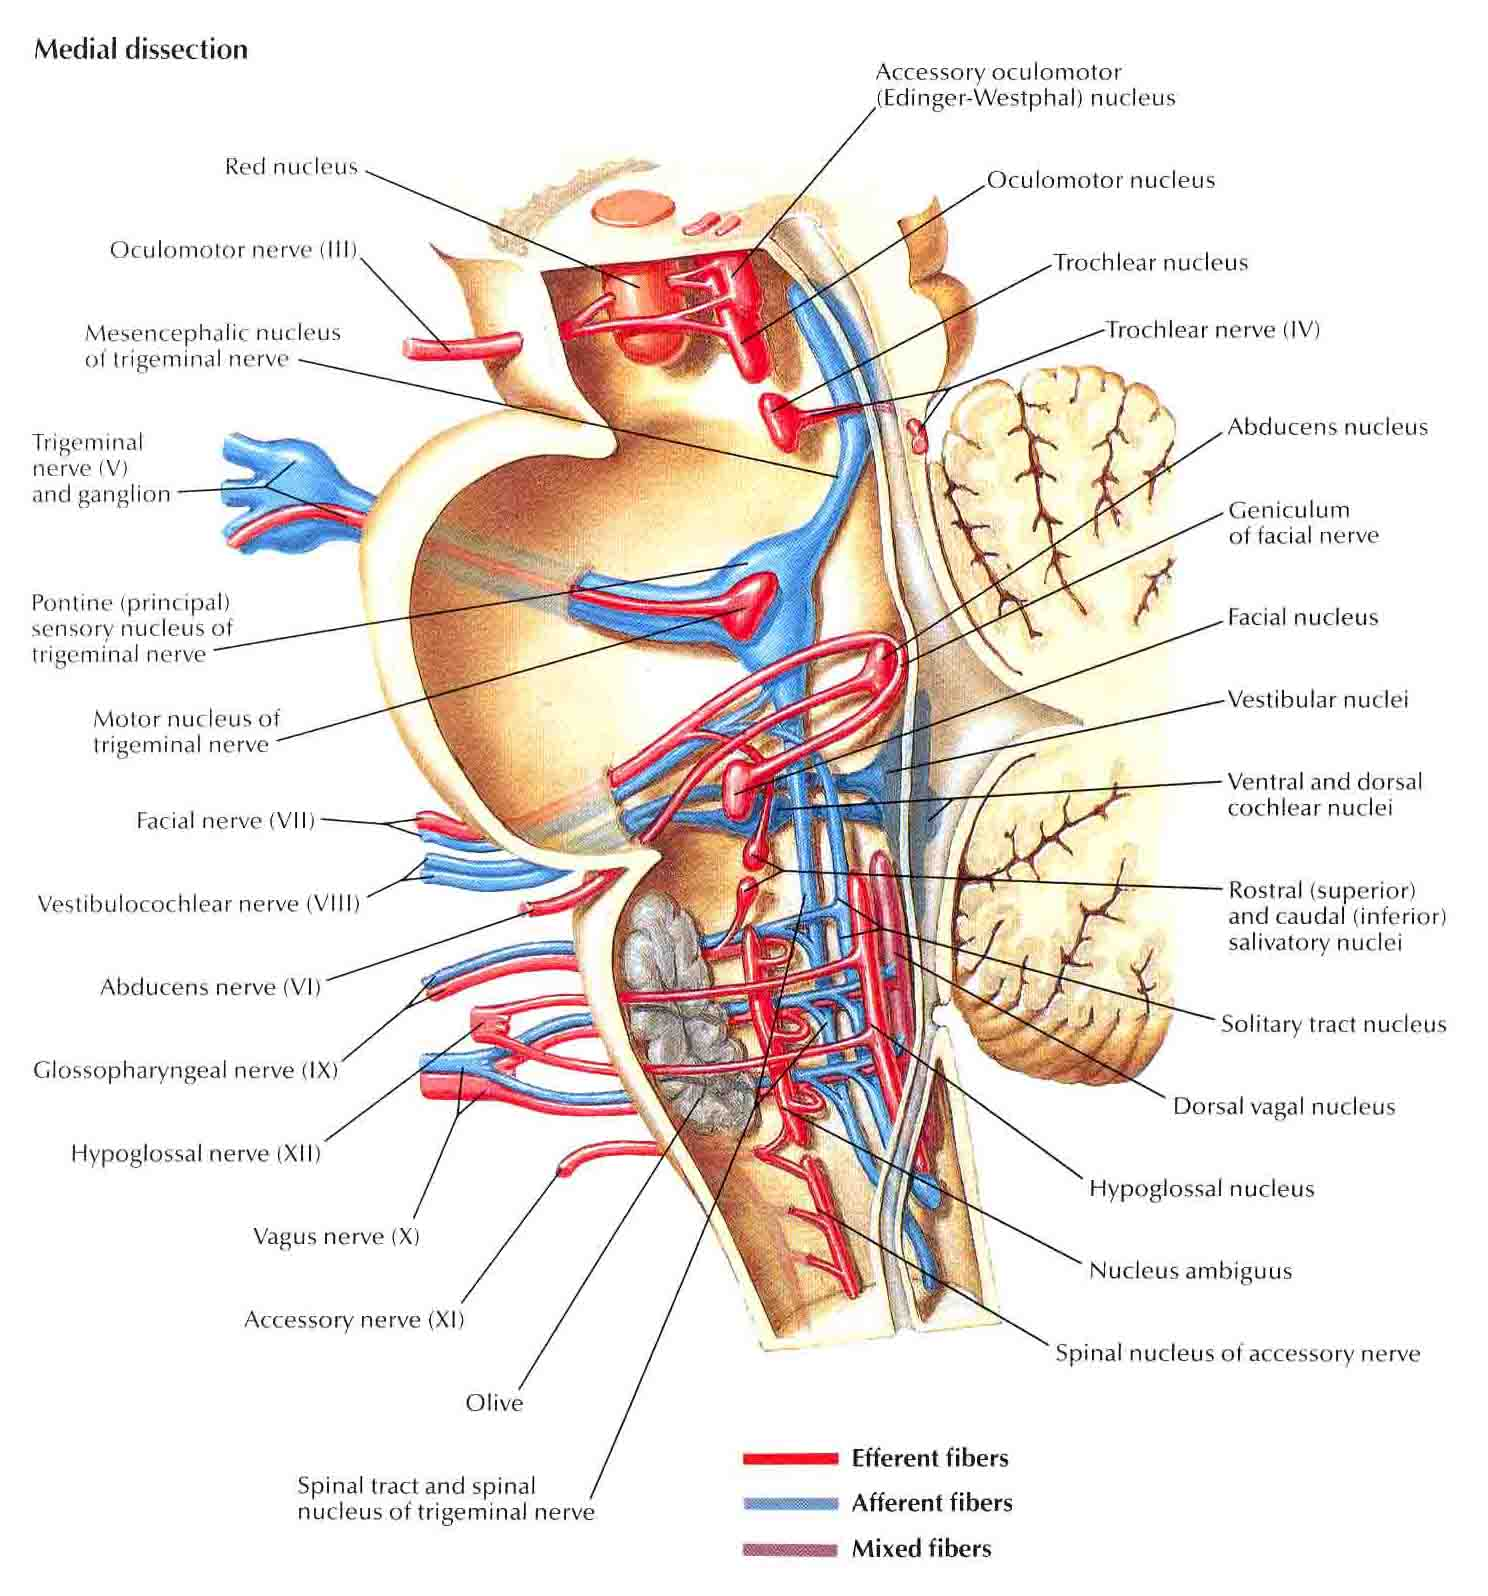 Brainstem Cranial Nerve Nuclei also 5600369 additionally Human Anatomy Organ Location Human Anatomy Liver Location Human Anatomy Liver Anatomy Human in addition Mesh info as well Thoracic Cavity. on ventral cavity location